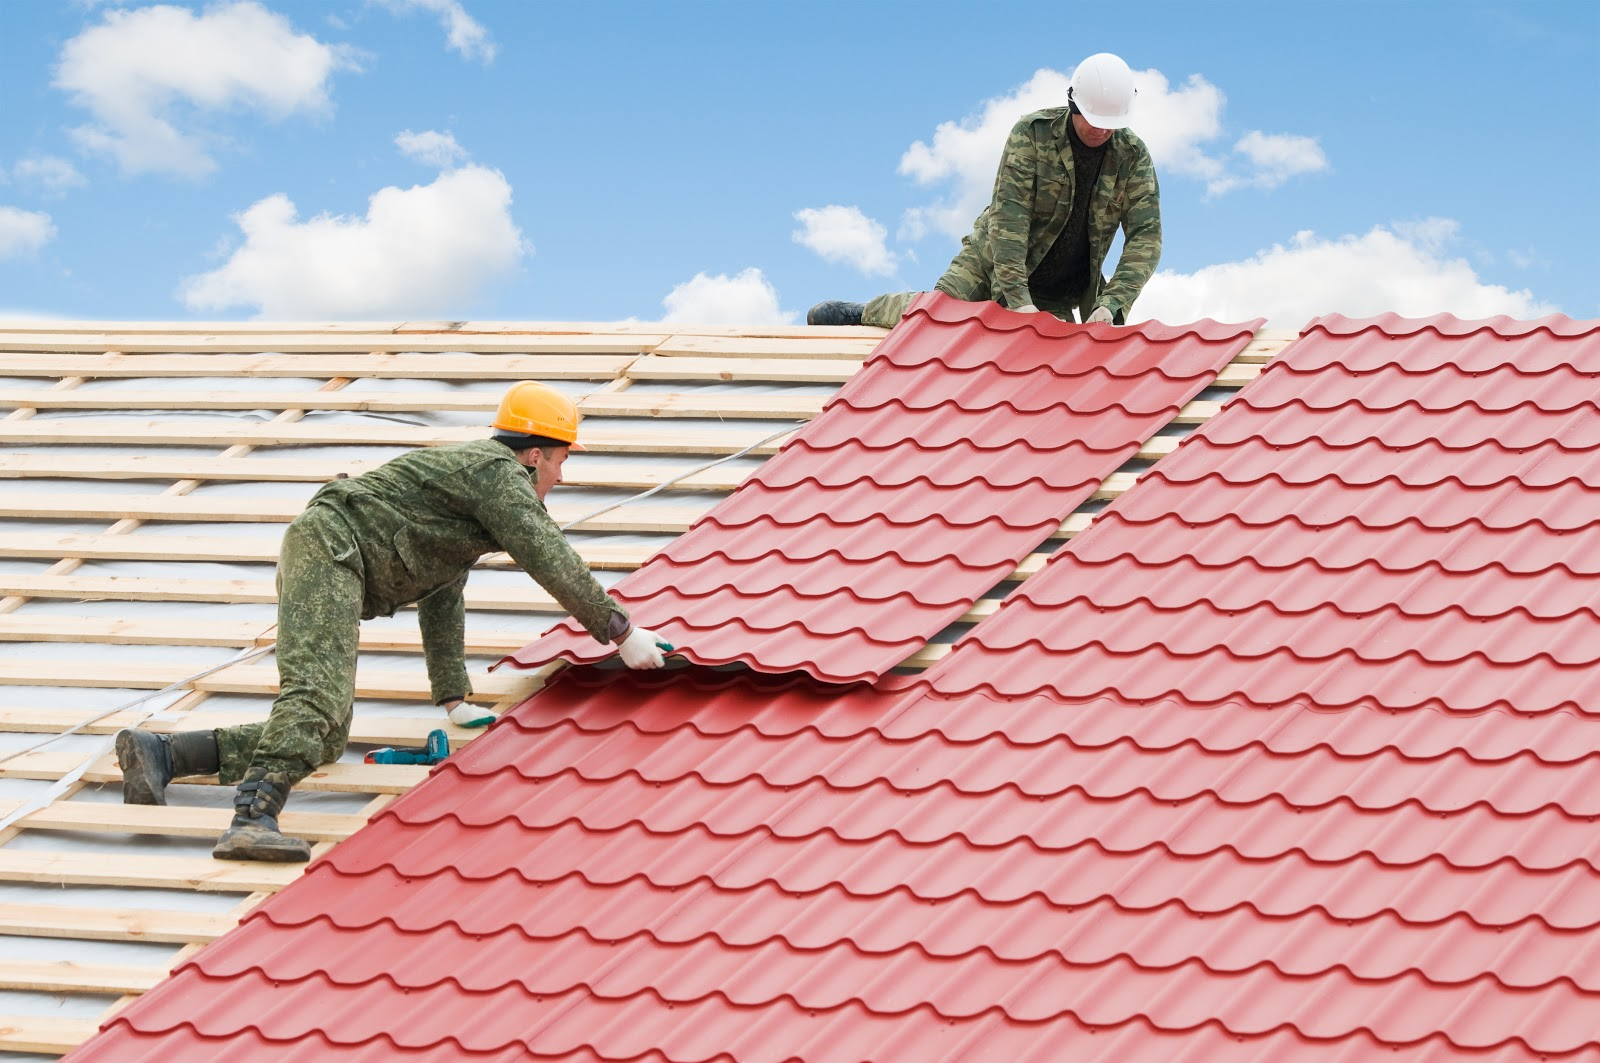 How To Install Metal Roofing Over Shingles Cost Problems Pros